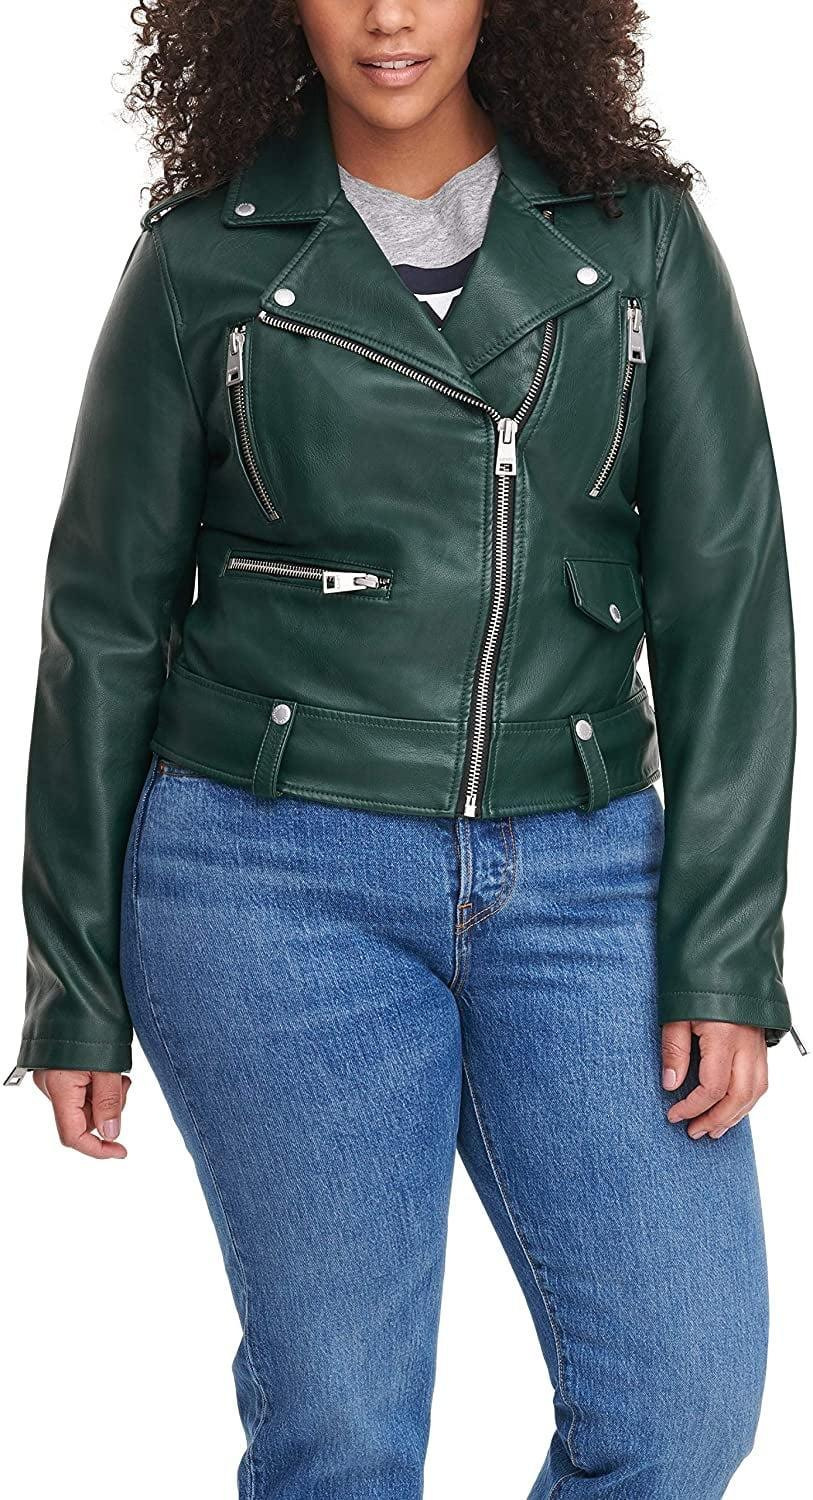 <p>The zippers of this <span>Levi's Faux Leather Jacket</span> ($36 - $150) make it stand out.</p>